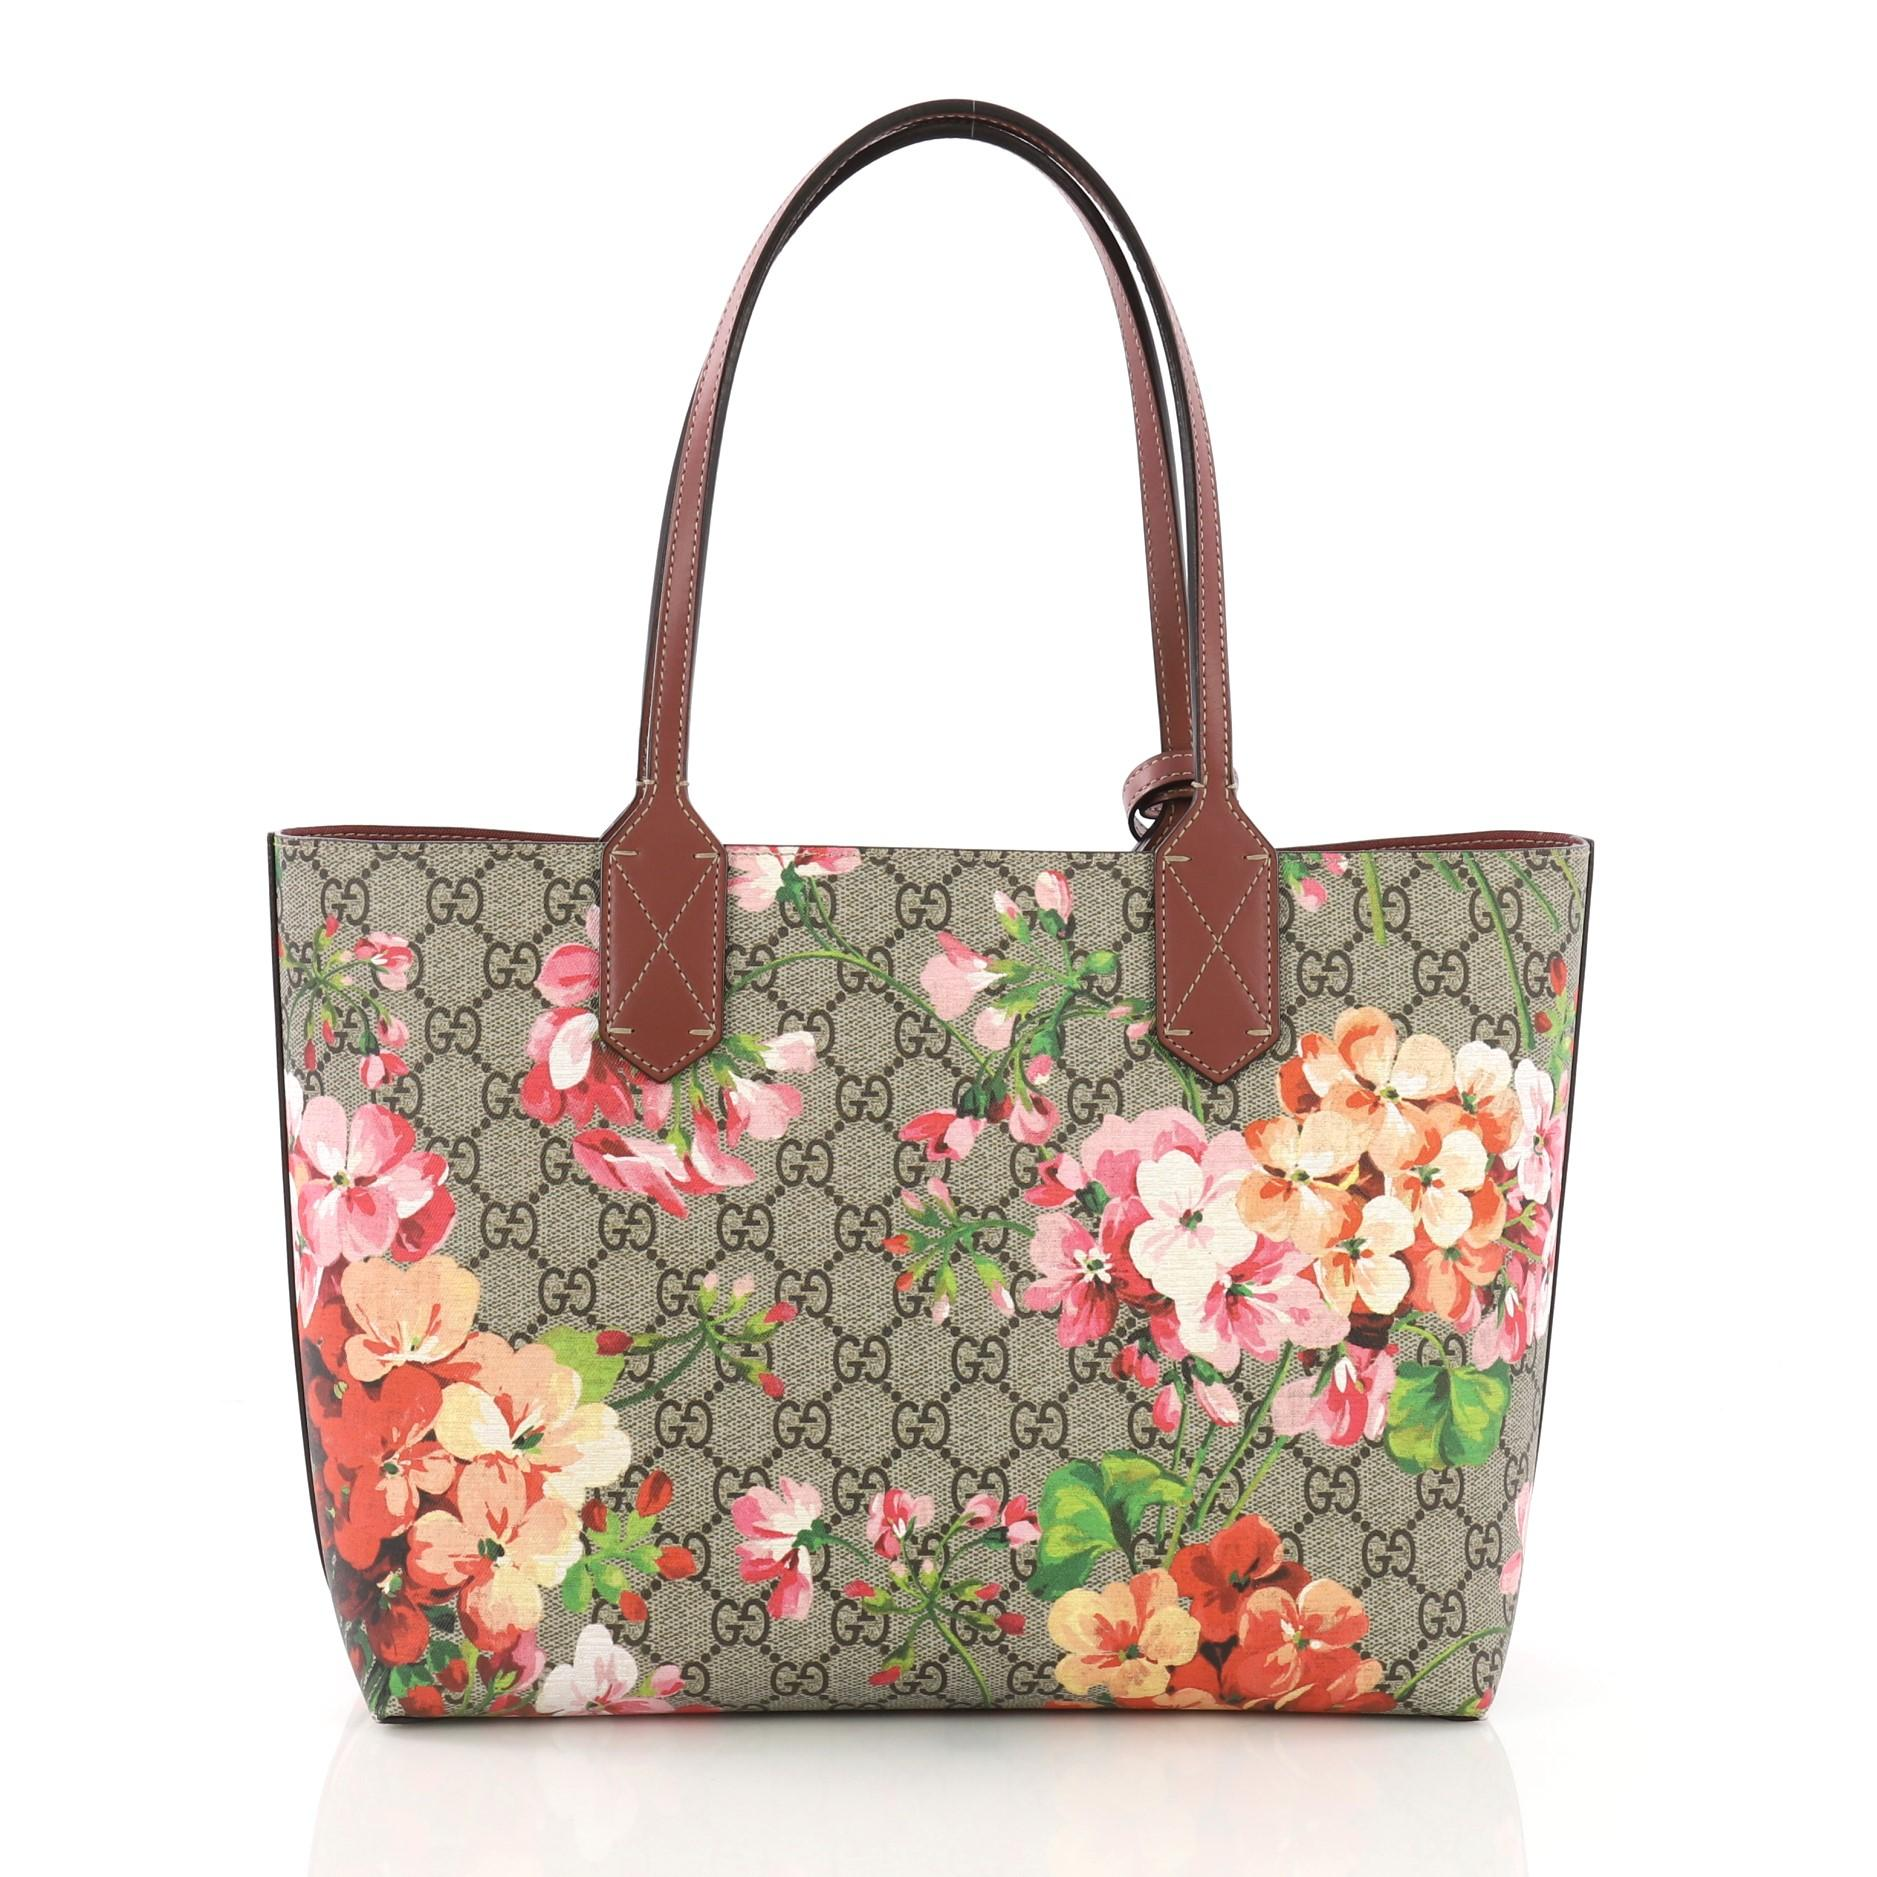 88090654388 Gucci Reversible Tote Blooms GG Print Leather Small at 1stdibs